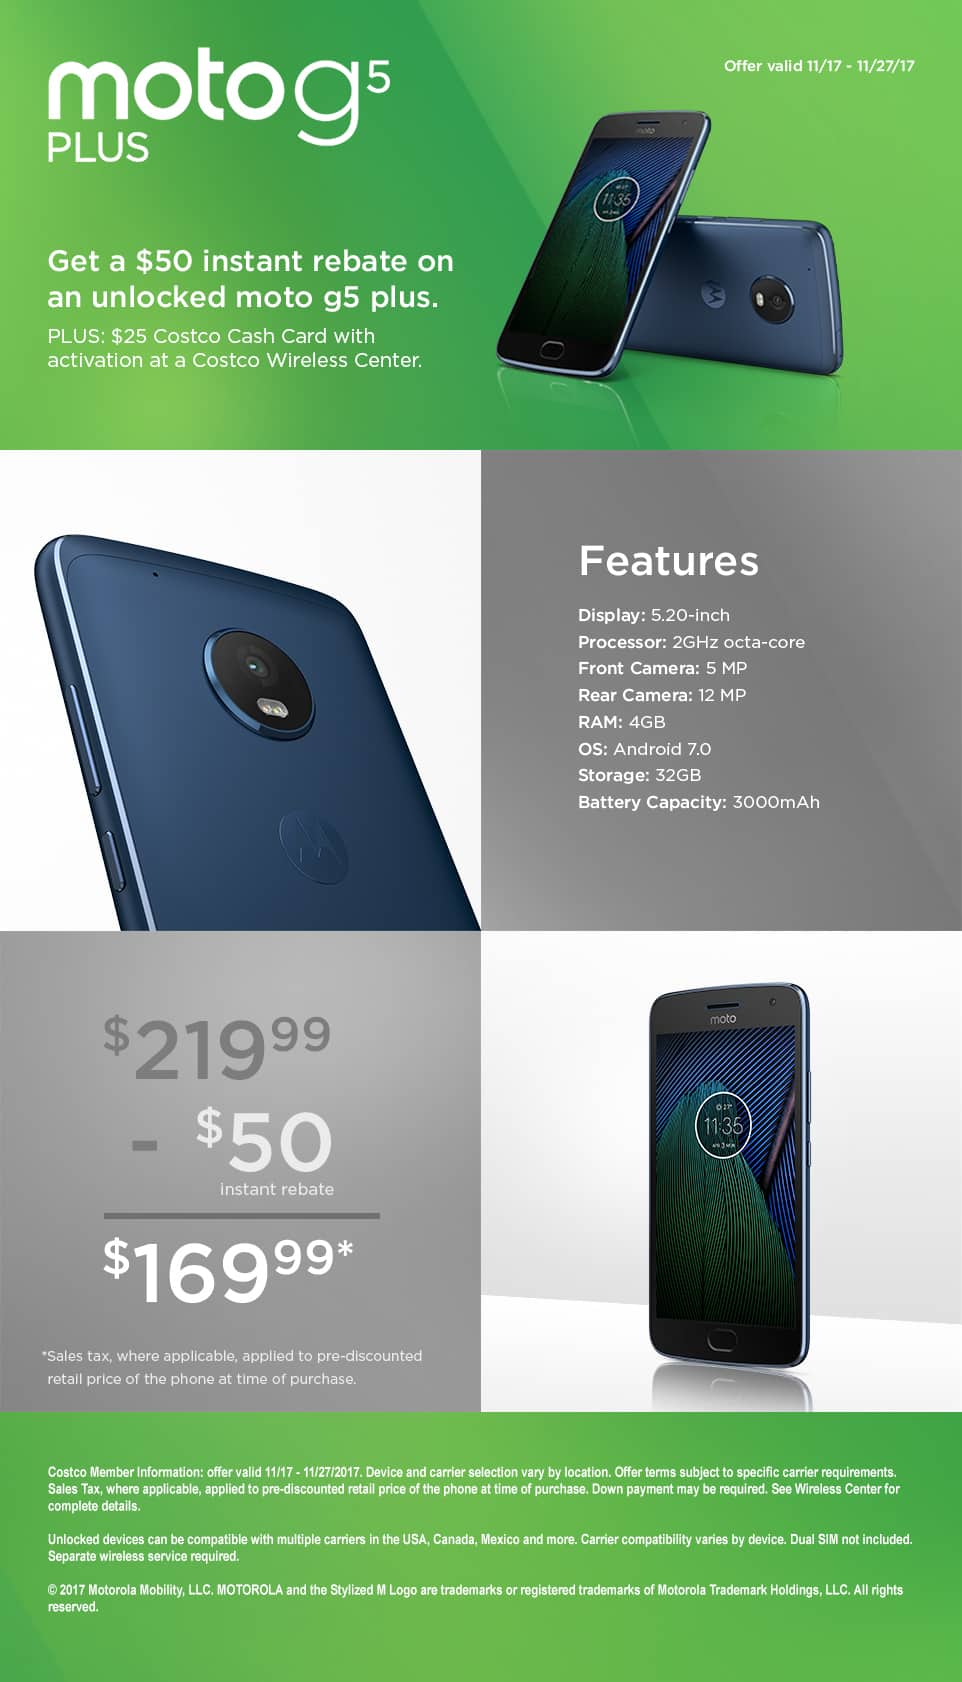 Moto G5 Plus 32gb $170 after instant $50 off at costco. Deal live